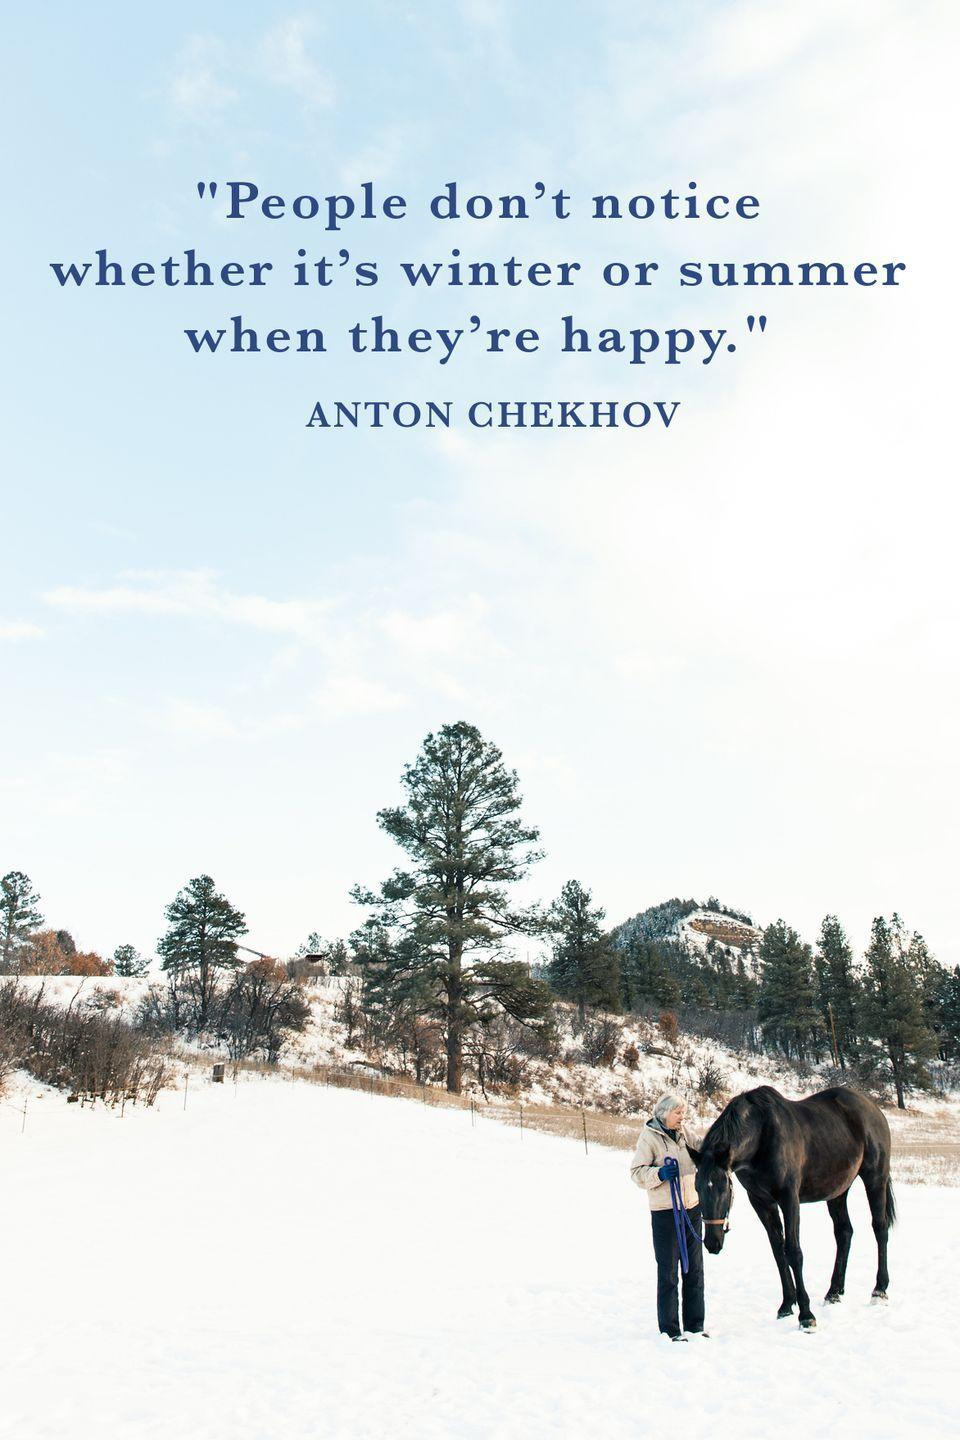 "<p>""People don't notice whether it's winter or summer when they're happy.""</p>"